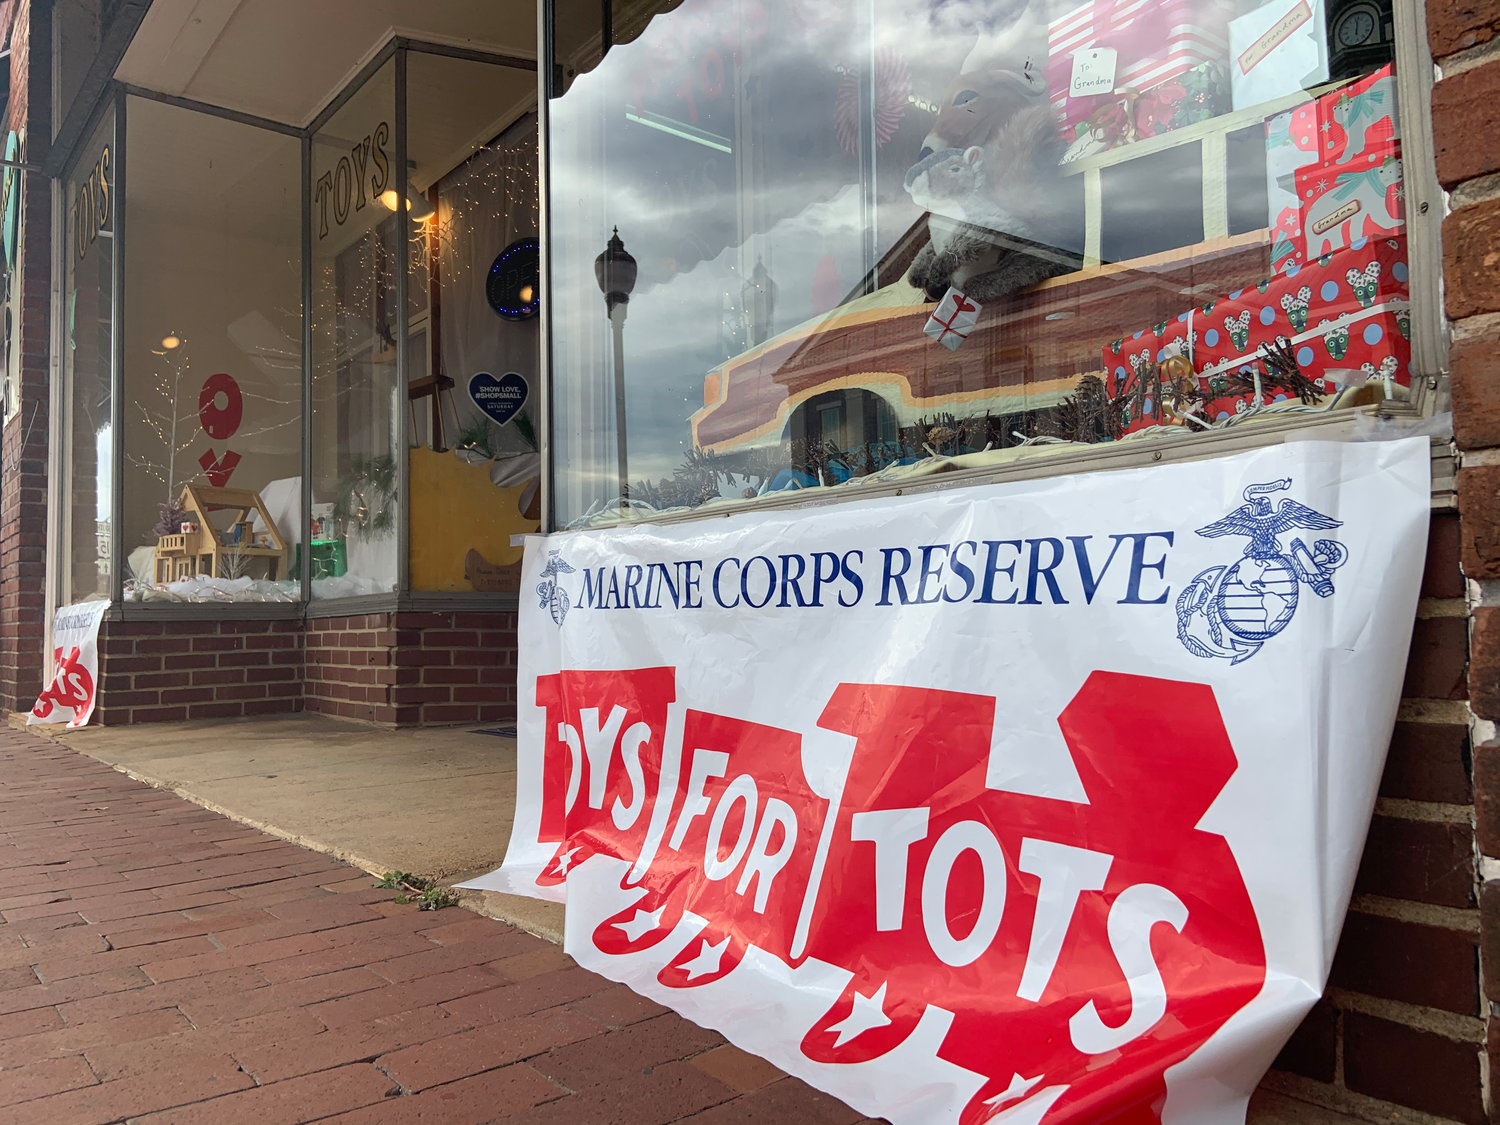 Pittsboro Toys marks its designation as a Toys for Tots drop-off site with this banner outside its store. Several places around the county are drop-off sites for Toys for Tots, a prgram run by the U.S. Marine Corps Reserve which distributes toys to children whose parents cannot afford to buy them gifts for Christmas.